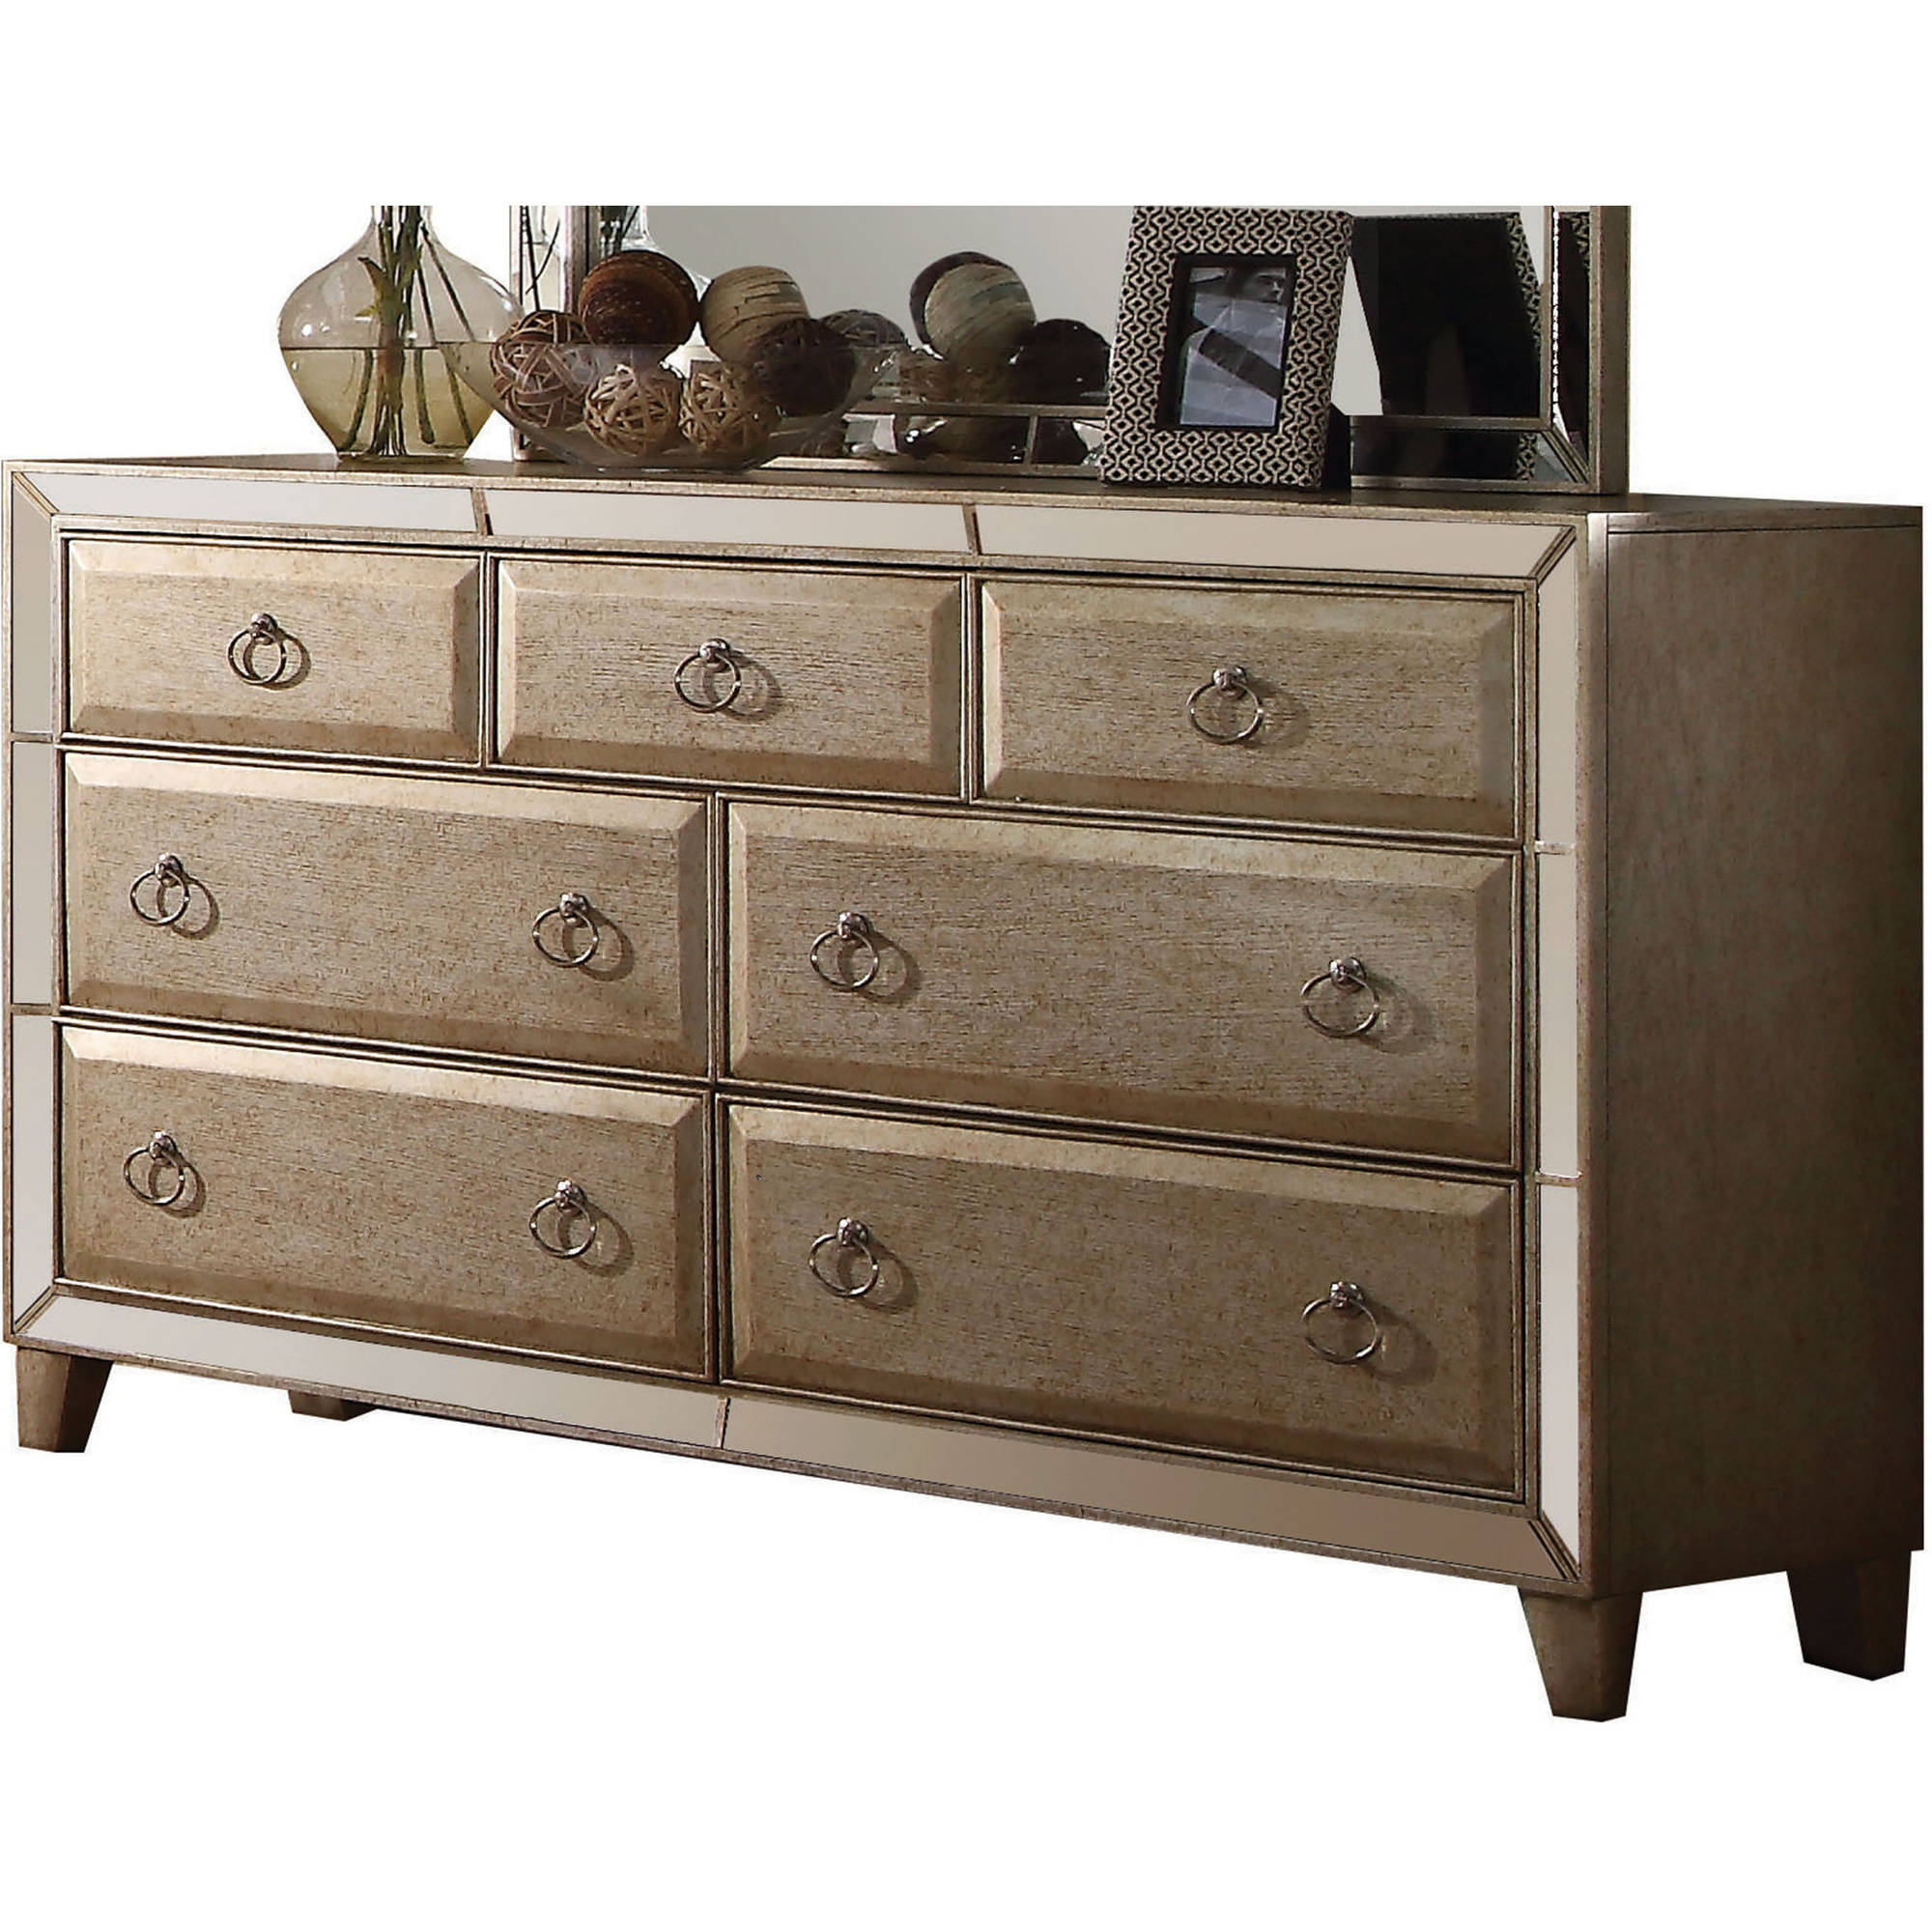 Acme Furniture Voeville Antique Gold Dresser with Seven Drawers